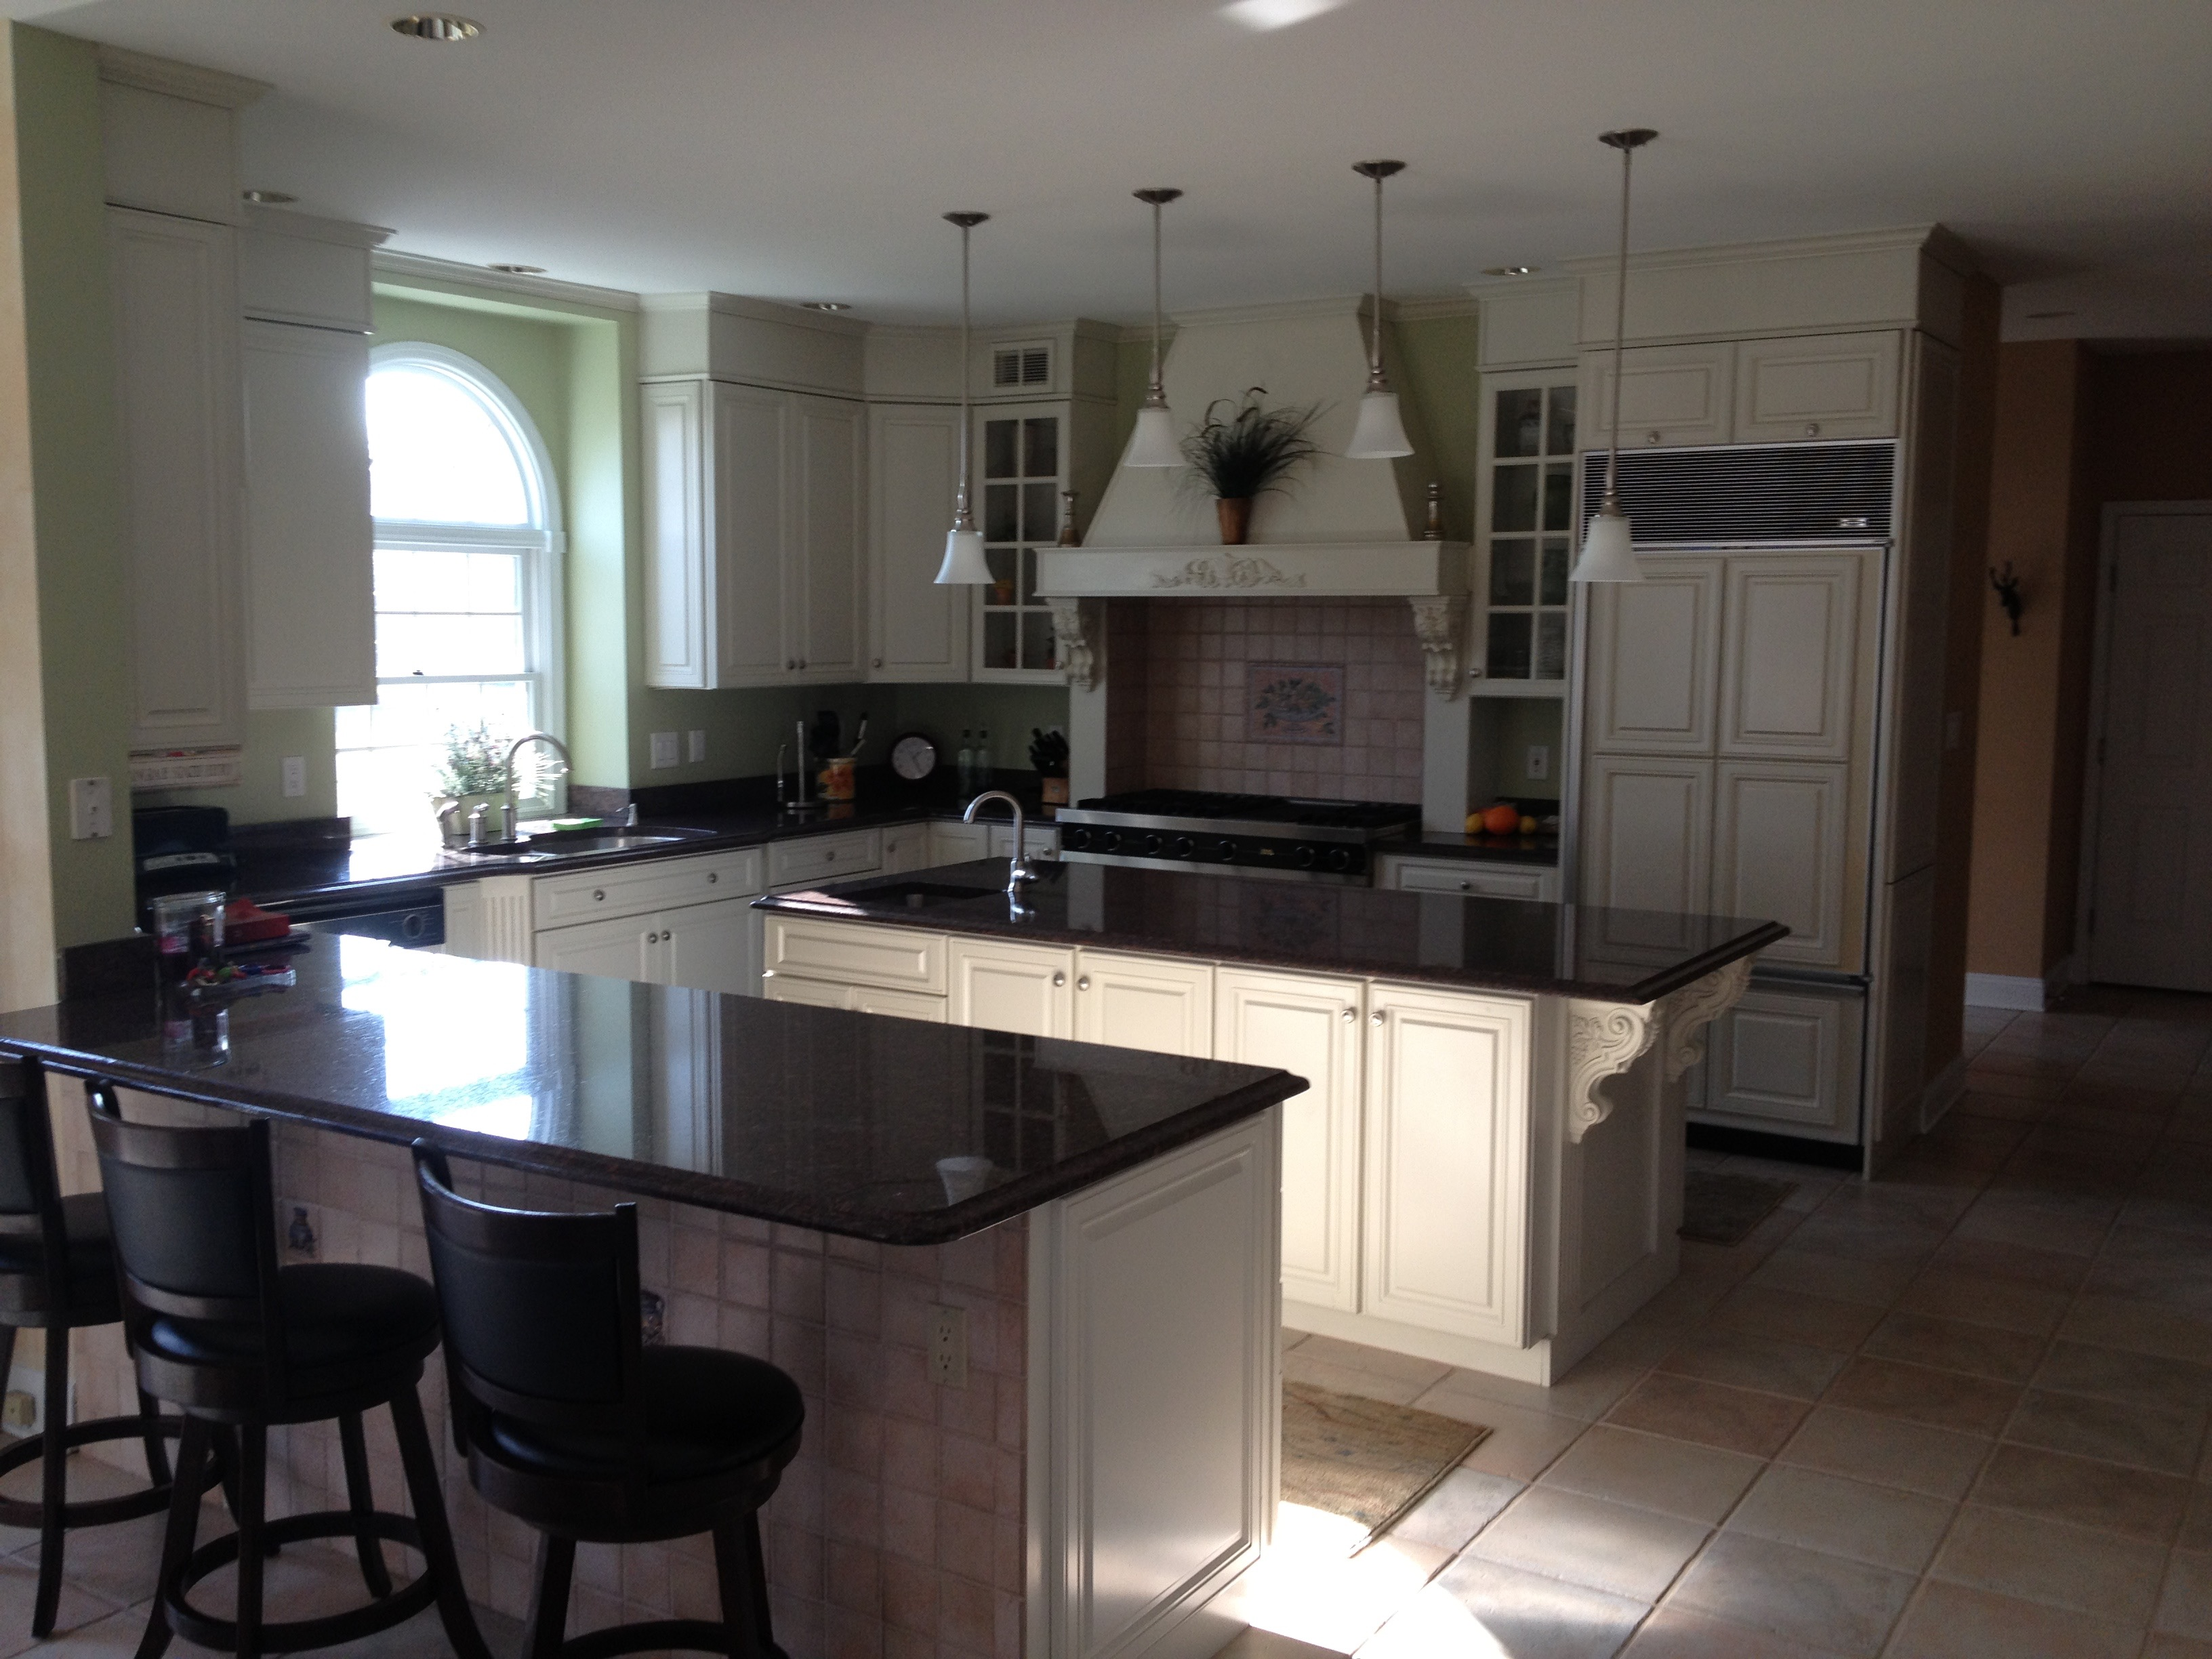 kitchen renovation costs nj triangle table remodel in sewell located south jersey a